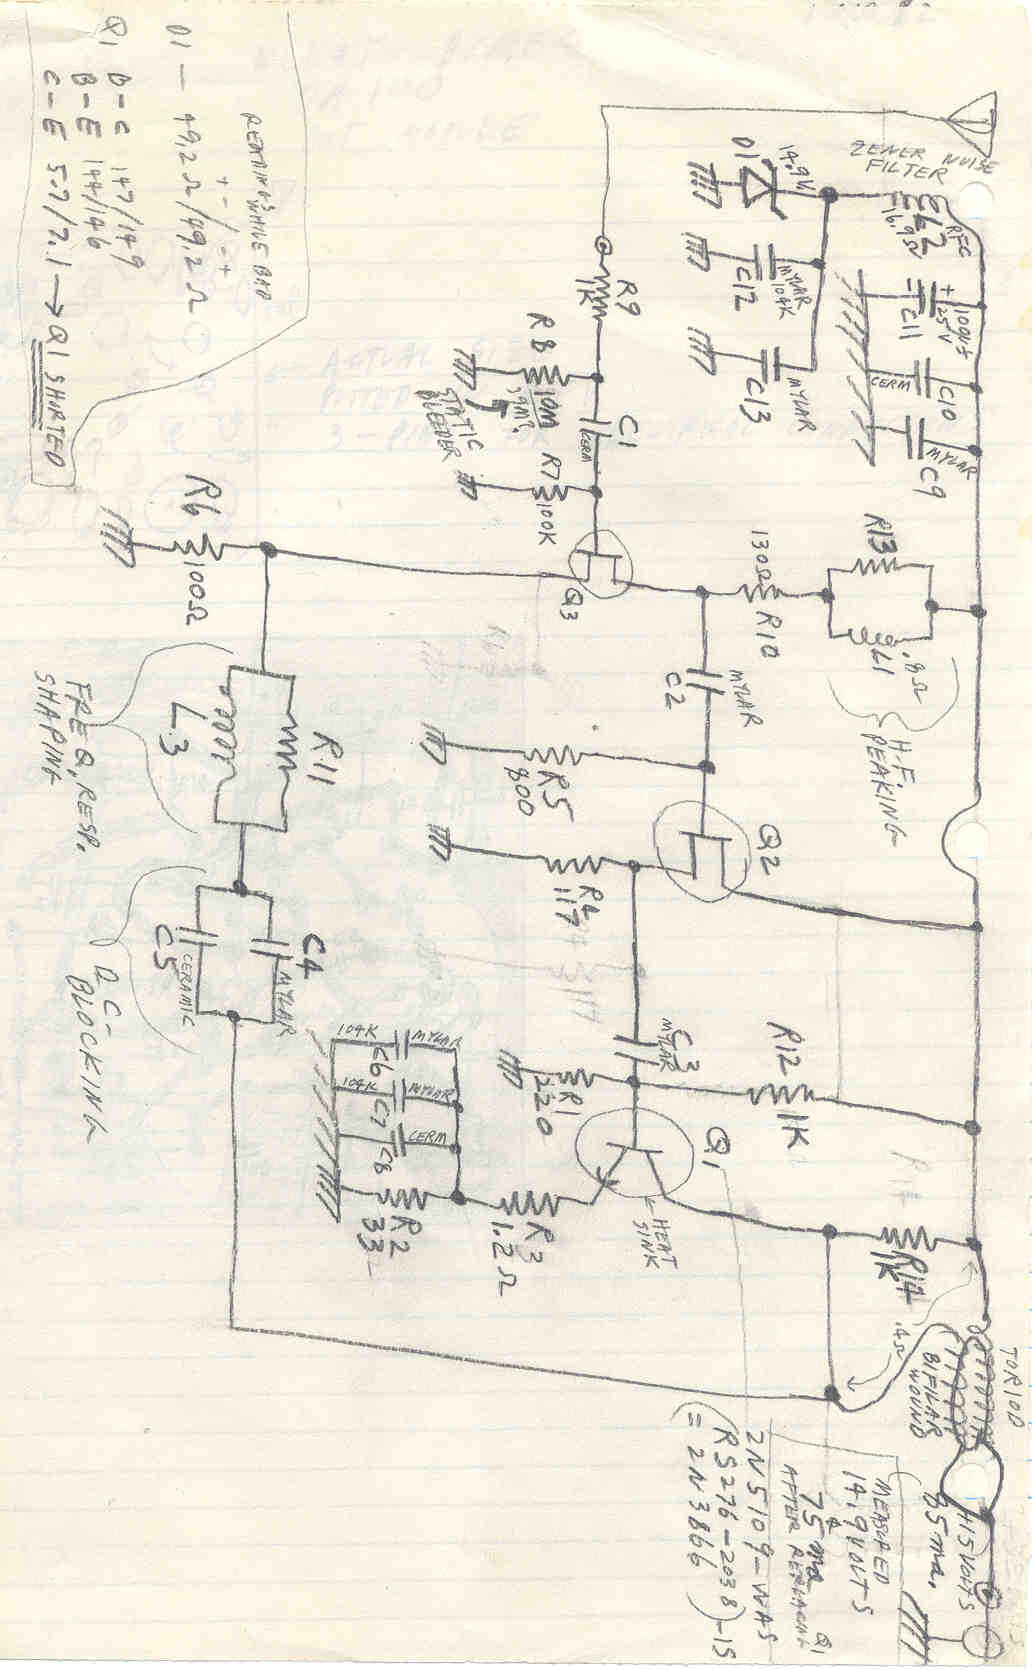 Results Page 437 About Dc Supply 0 30 V Output Searching Ledcircuits 2 Delabs Schematics Electronic Circuit Antennas